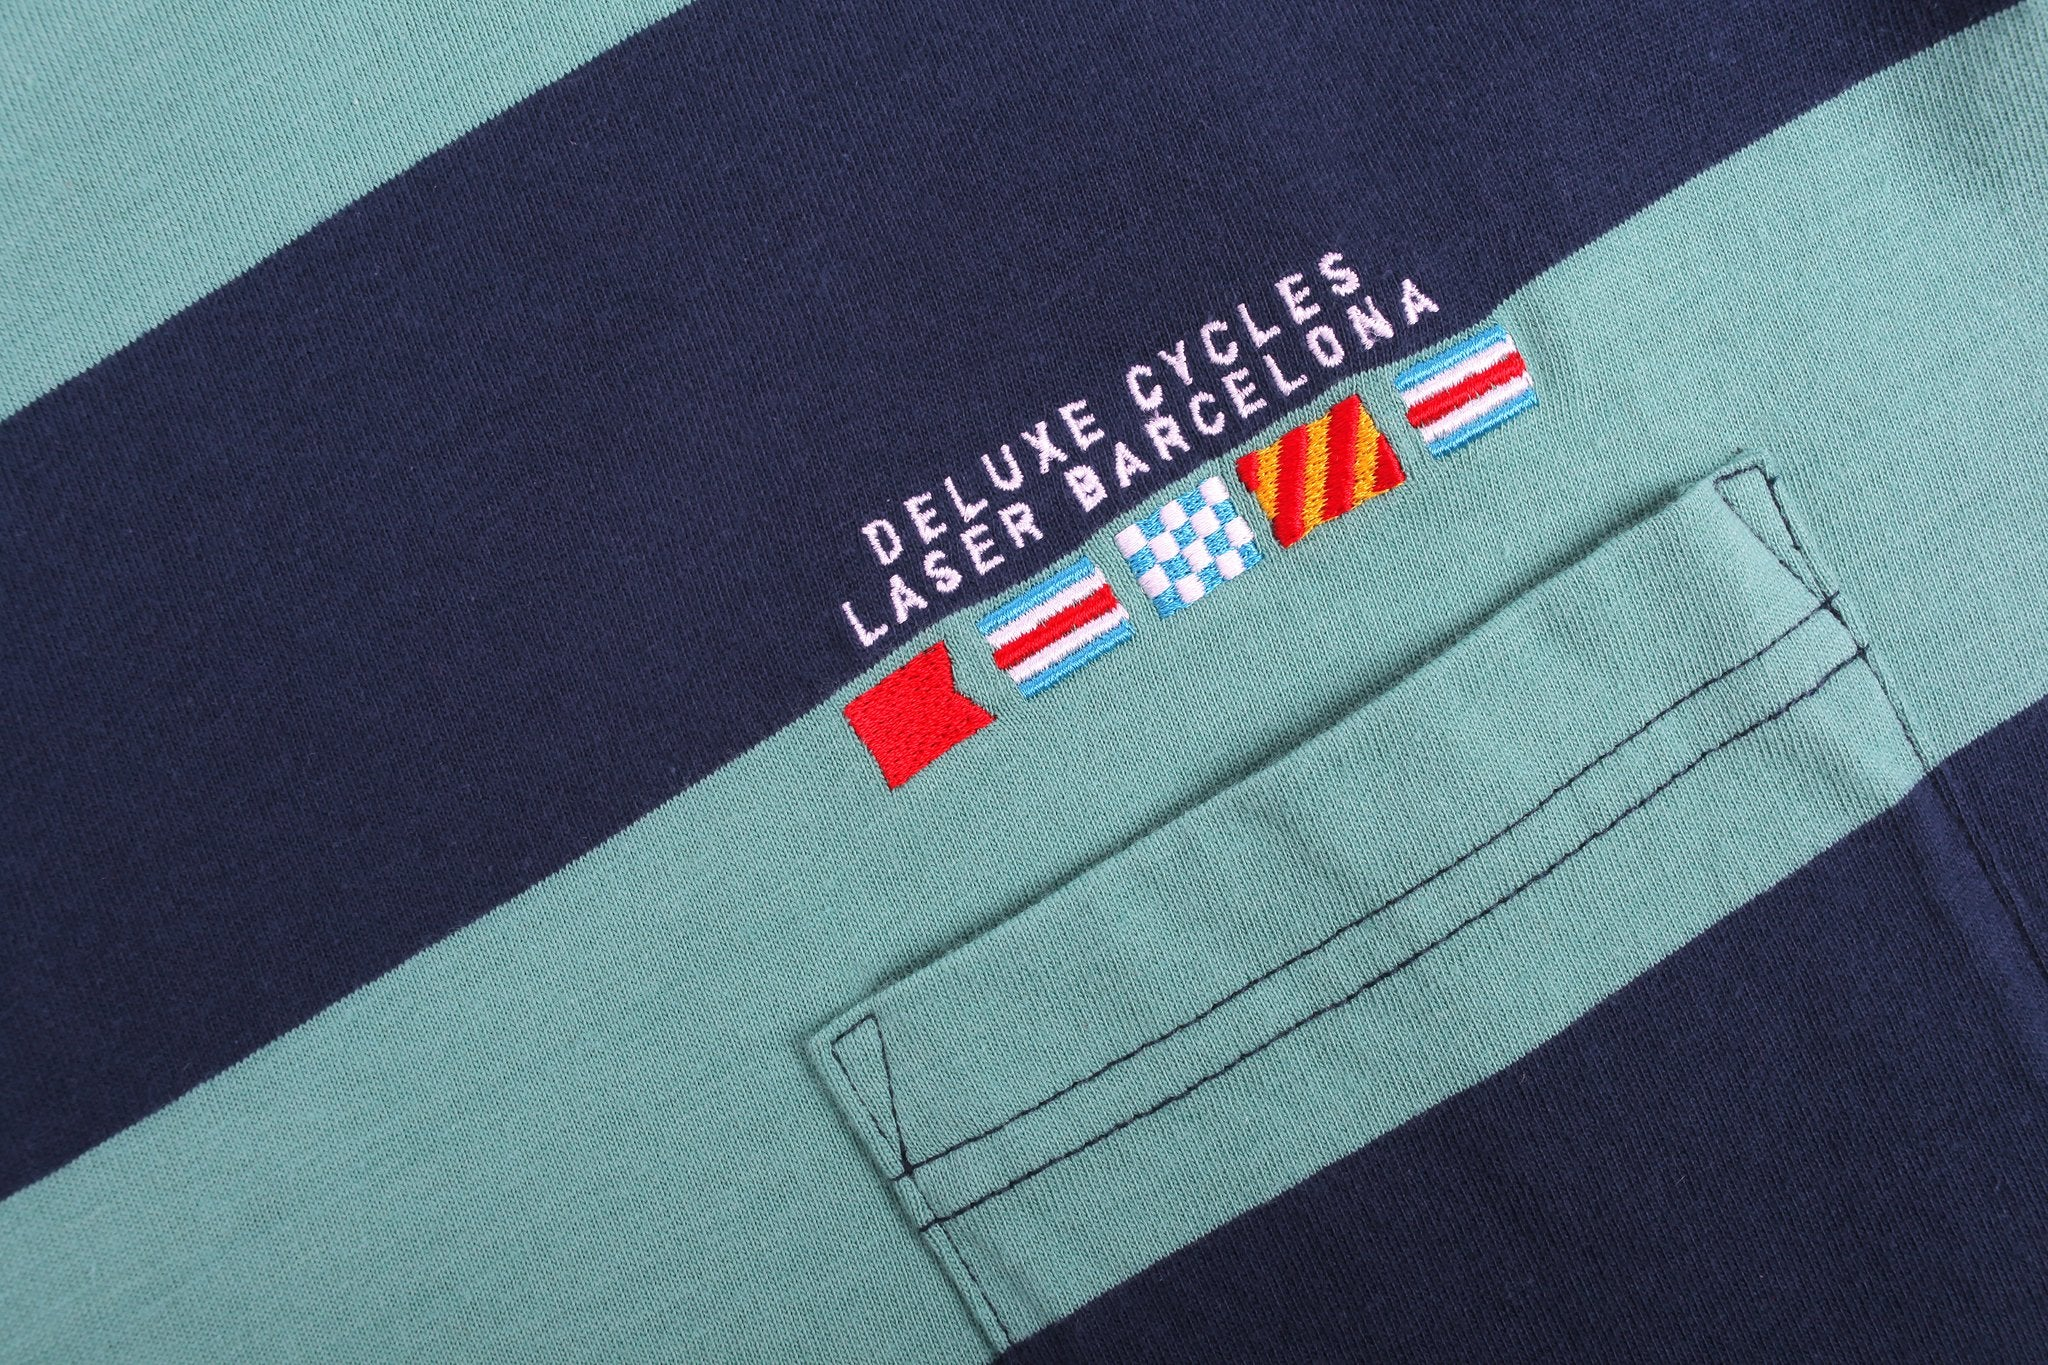 Laser Barcelona x Deluxe Cycles - CITY FLAGS WOVEN POCKET TEE  - SEAWEED